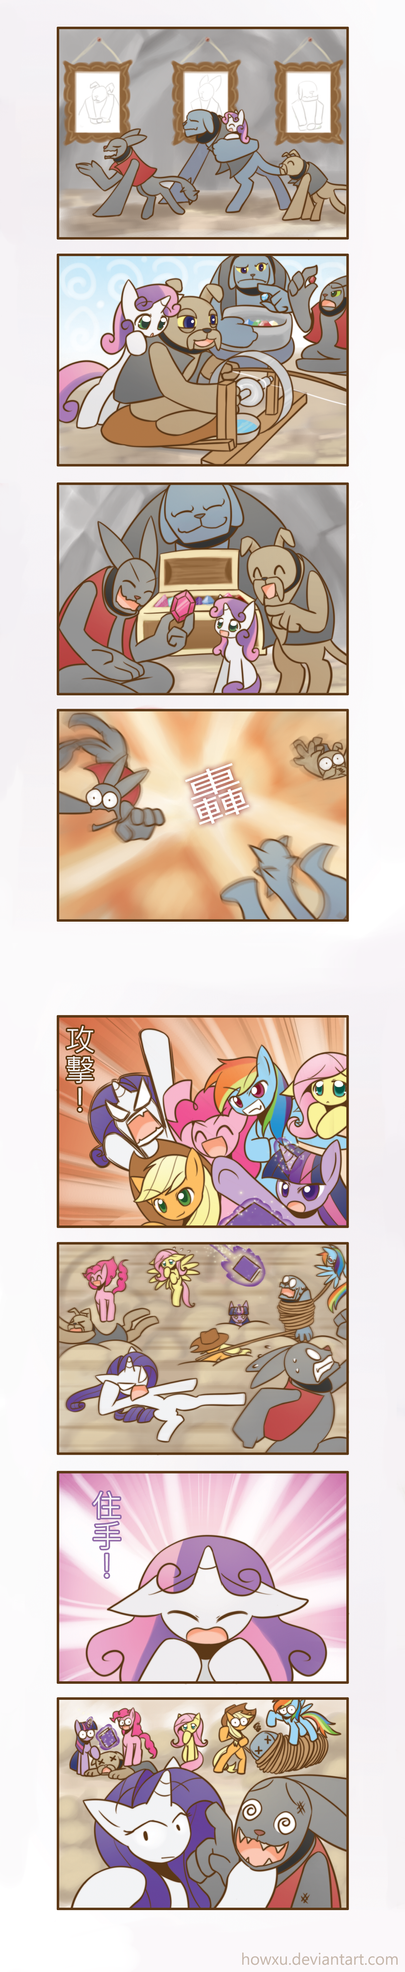 A dog and a filly show p4 Chinese by HowXu